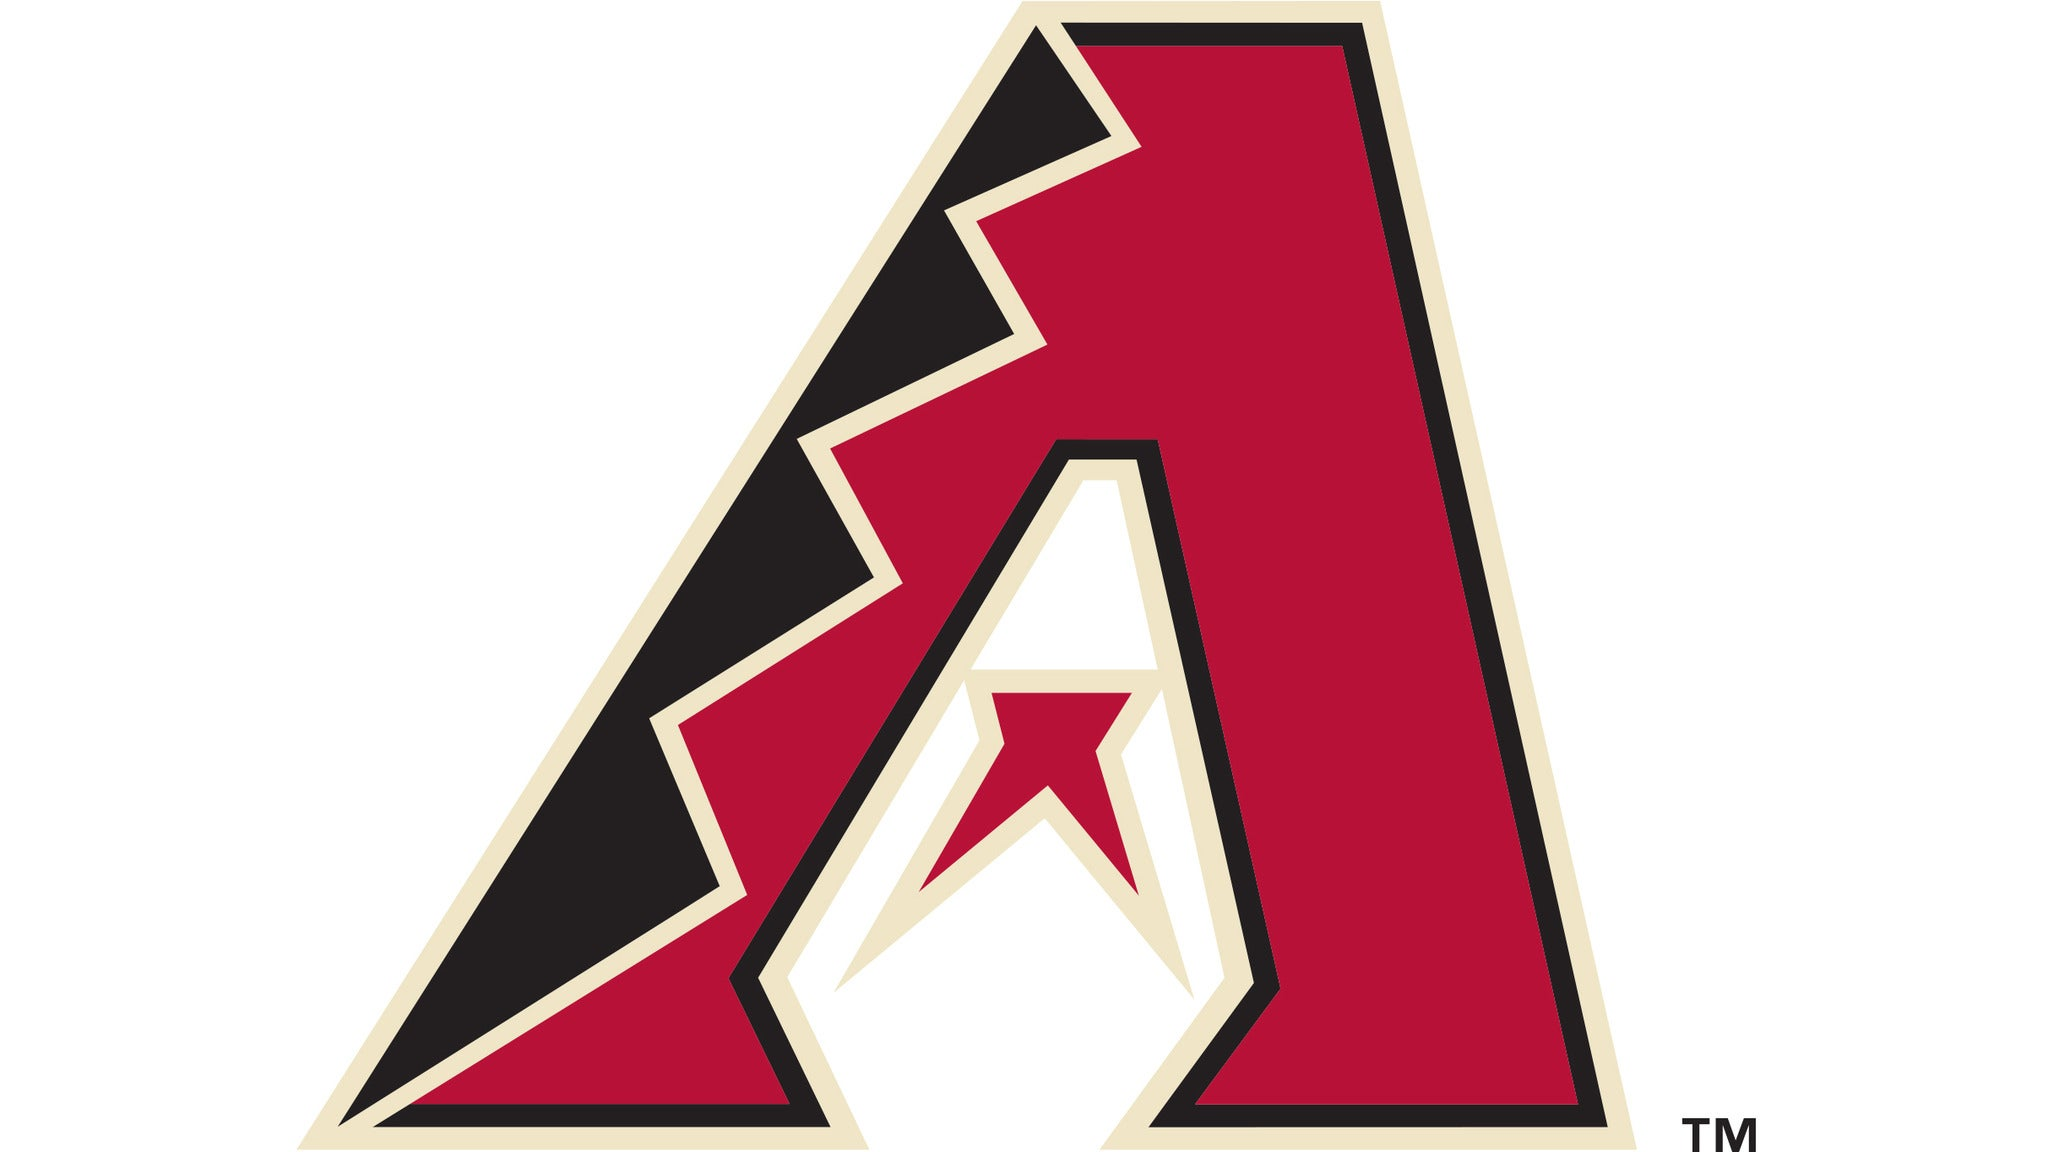 Arizona Diamondbacks vs. San Francisco Giants at Chase Field